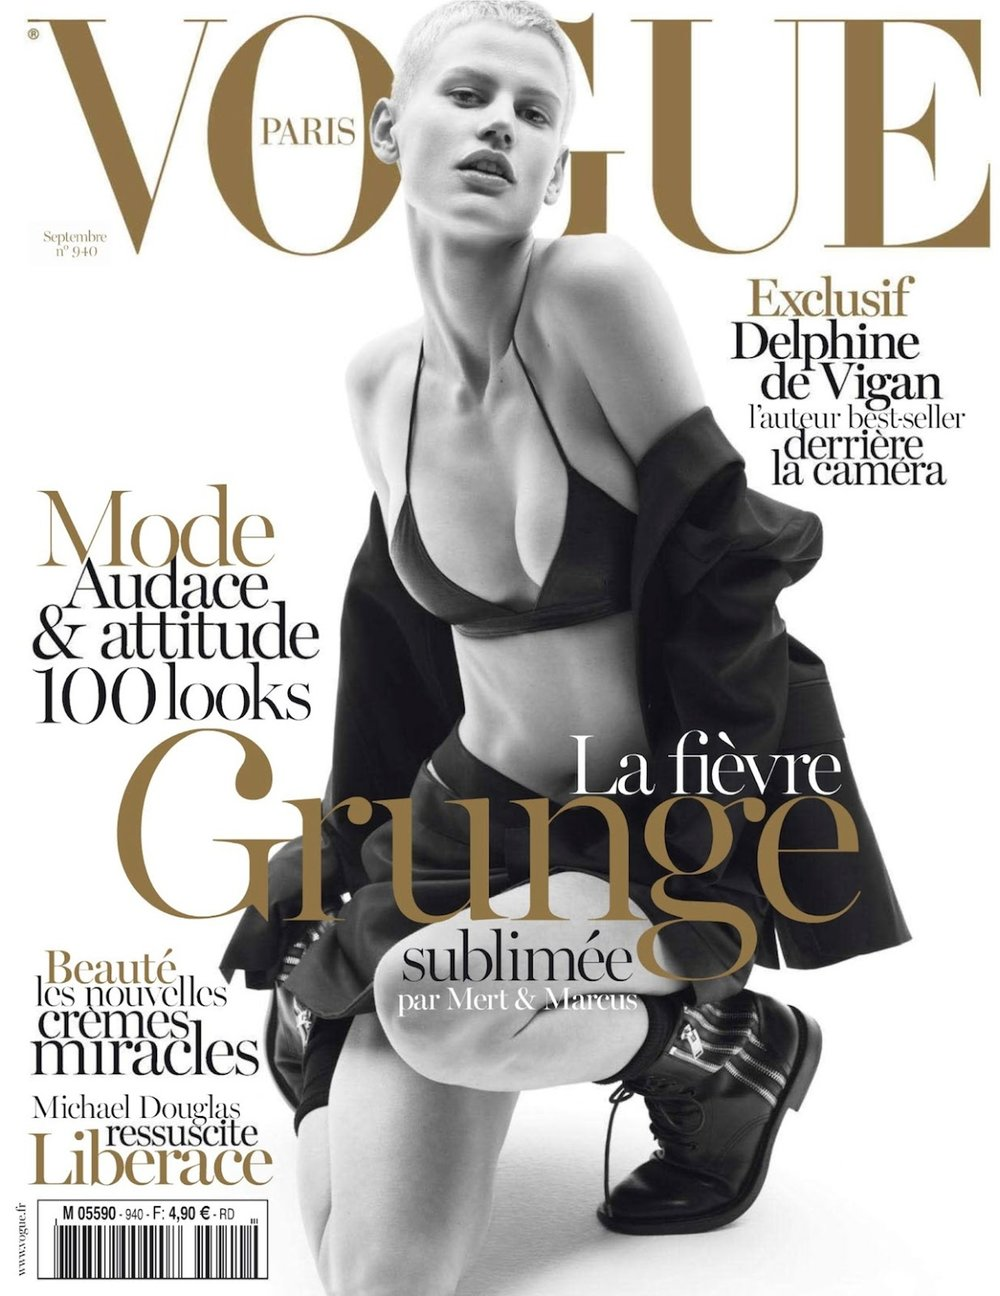 vogue-paris-2013-septembre-dragged.jpg